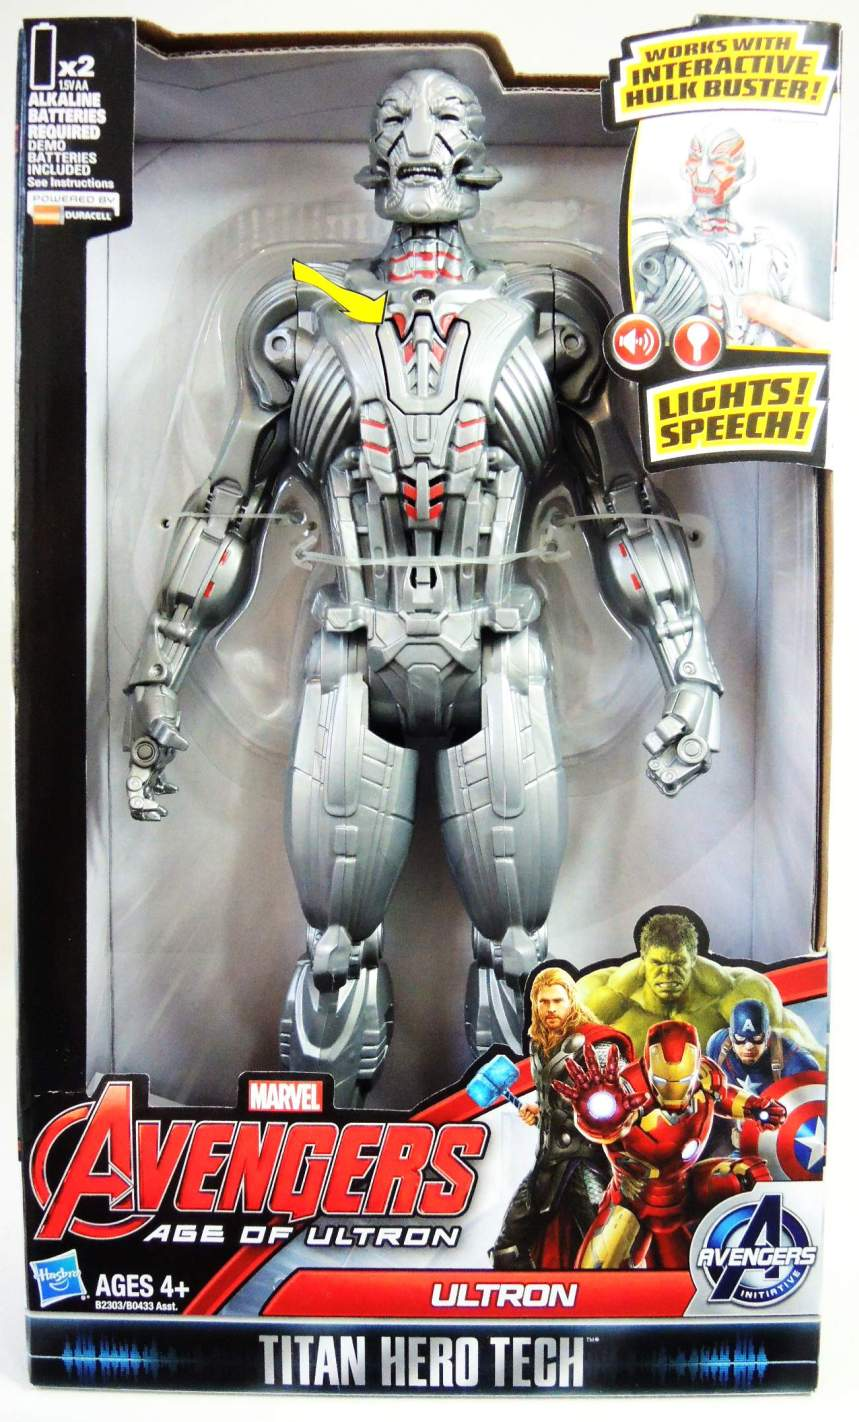 Avengers Age of Ultron Titan Hero Tech 12 inch Ultron Hasbro, Avengers, Action Figures, 2015, superhero, comic book